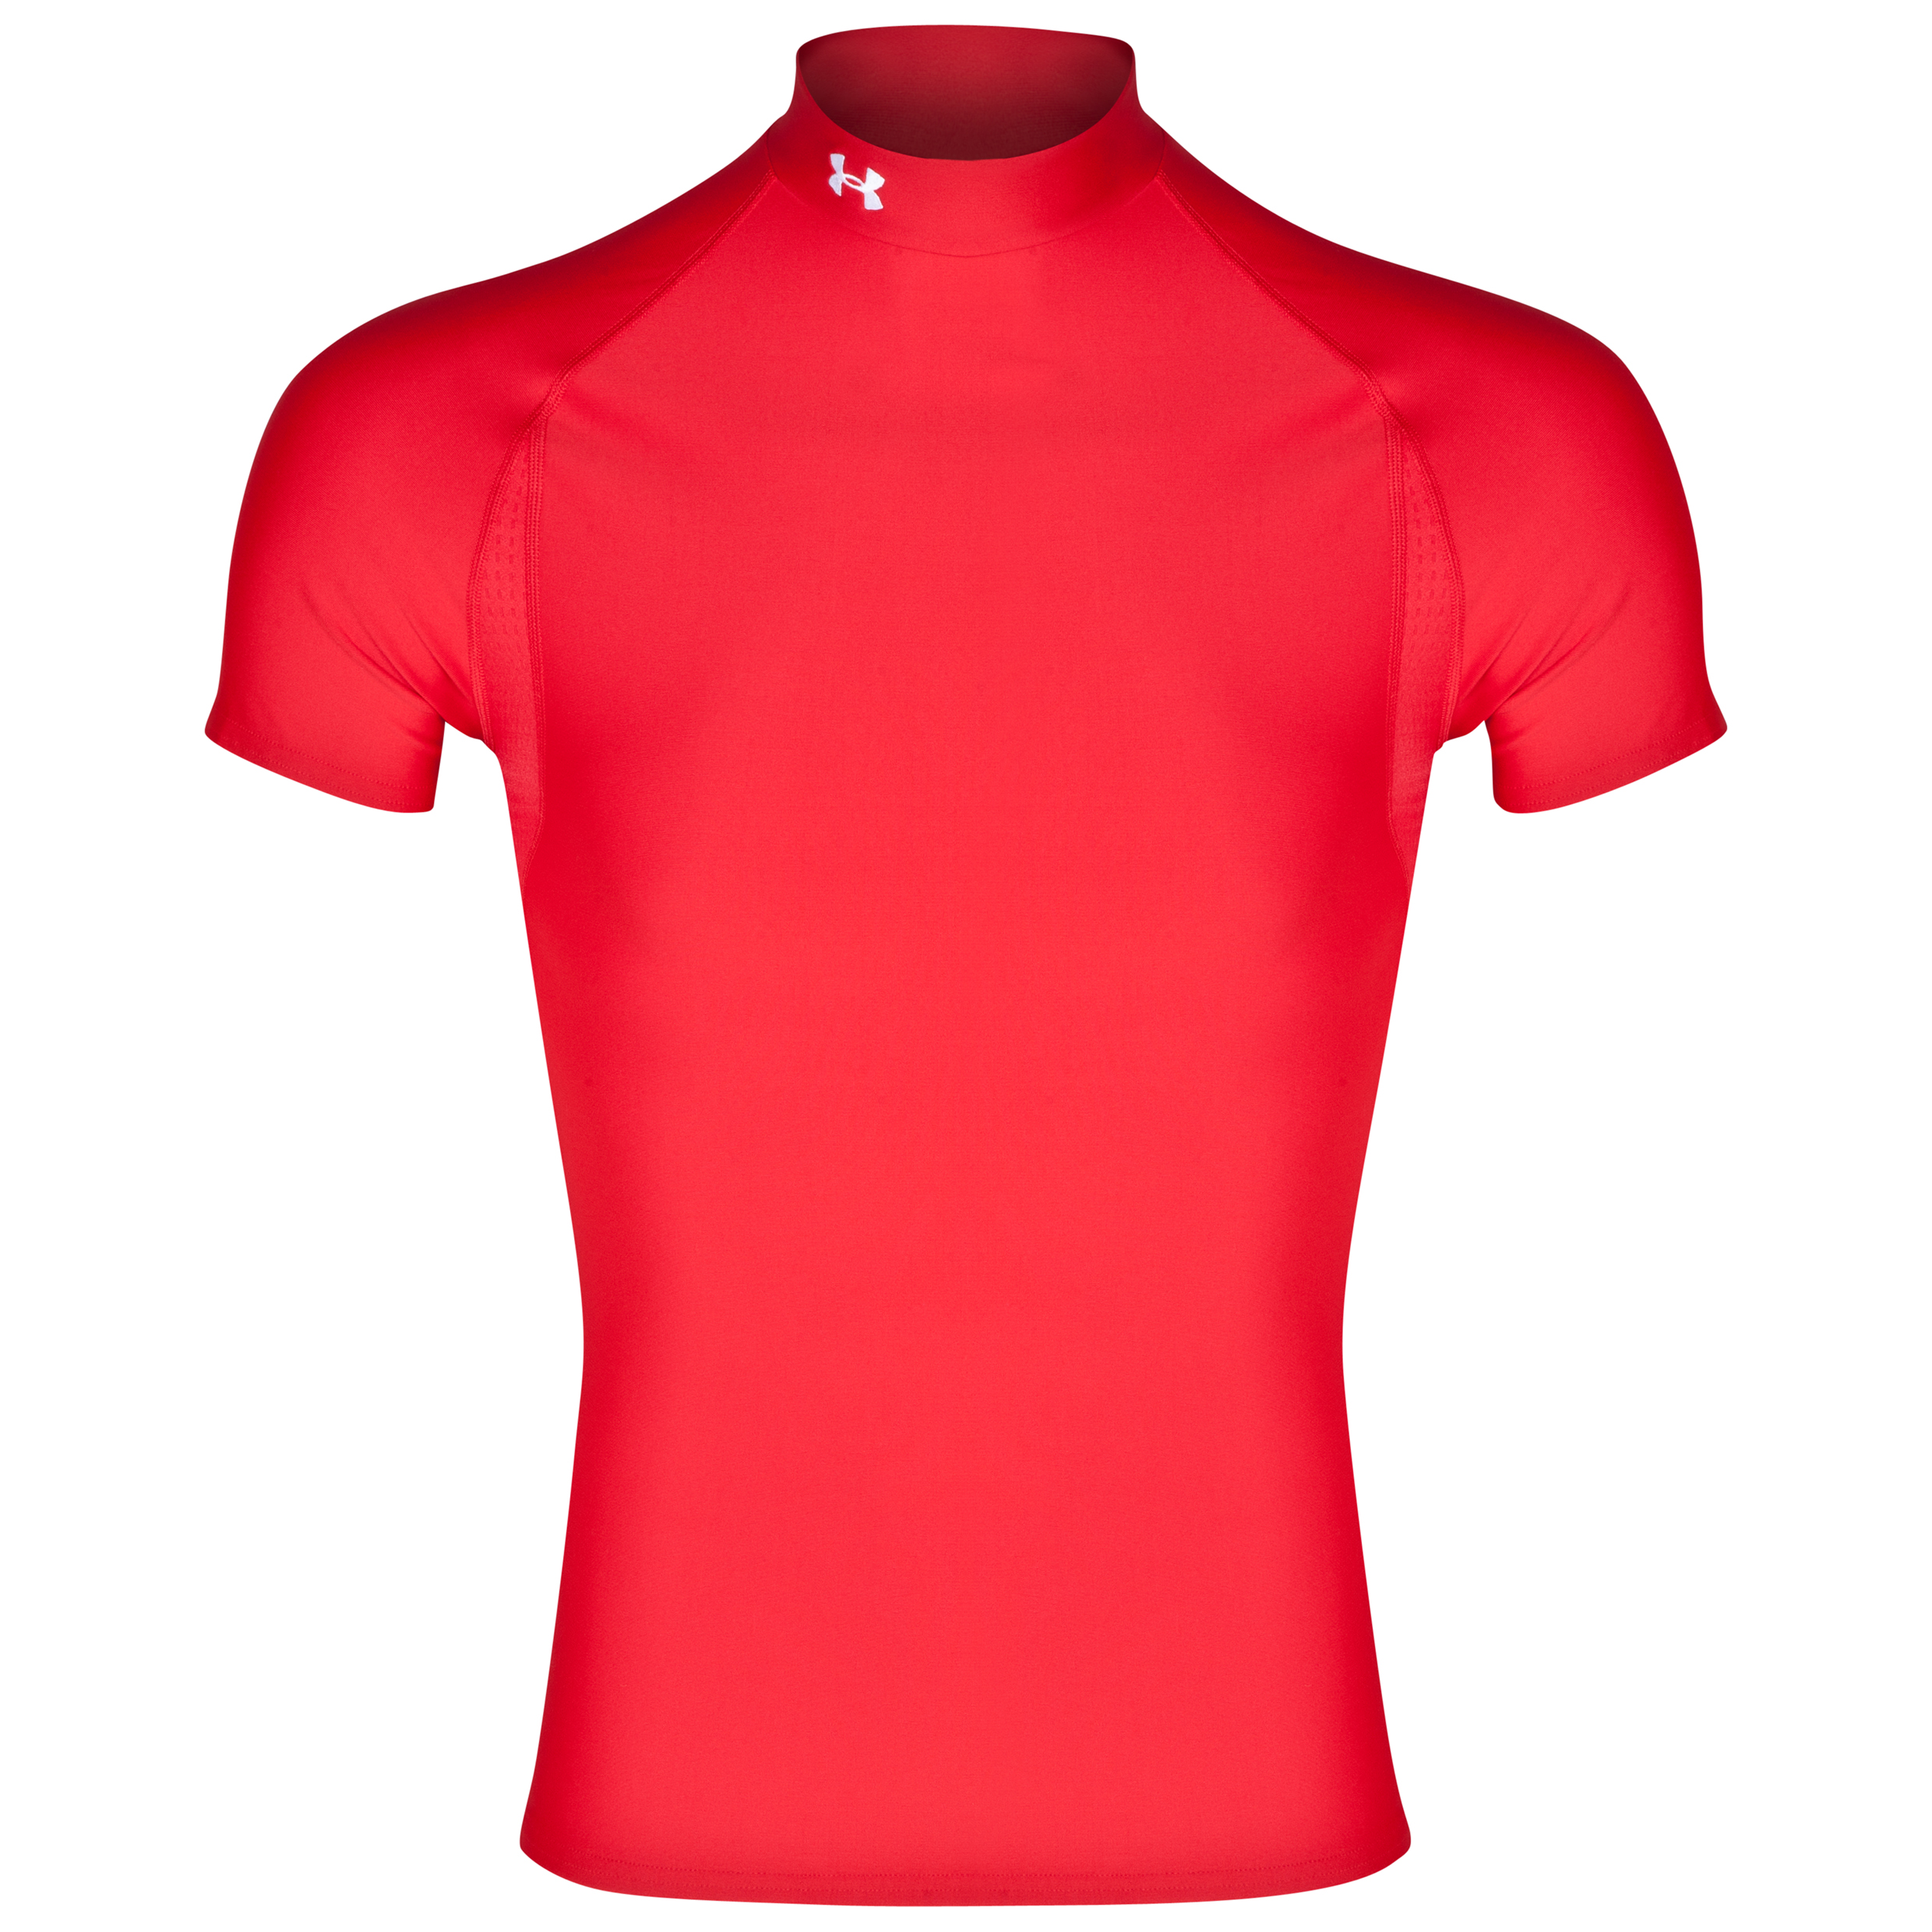 Under Armour Evo Coldgear Mock Base Layer Top Red